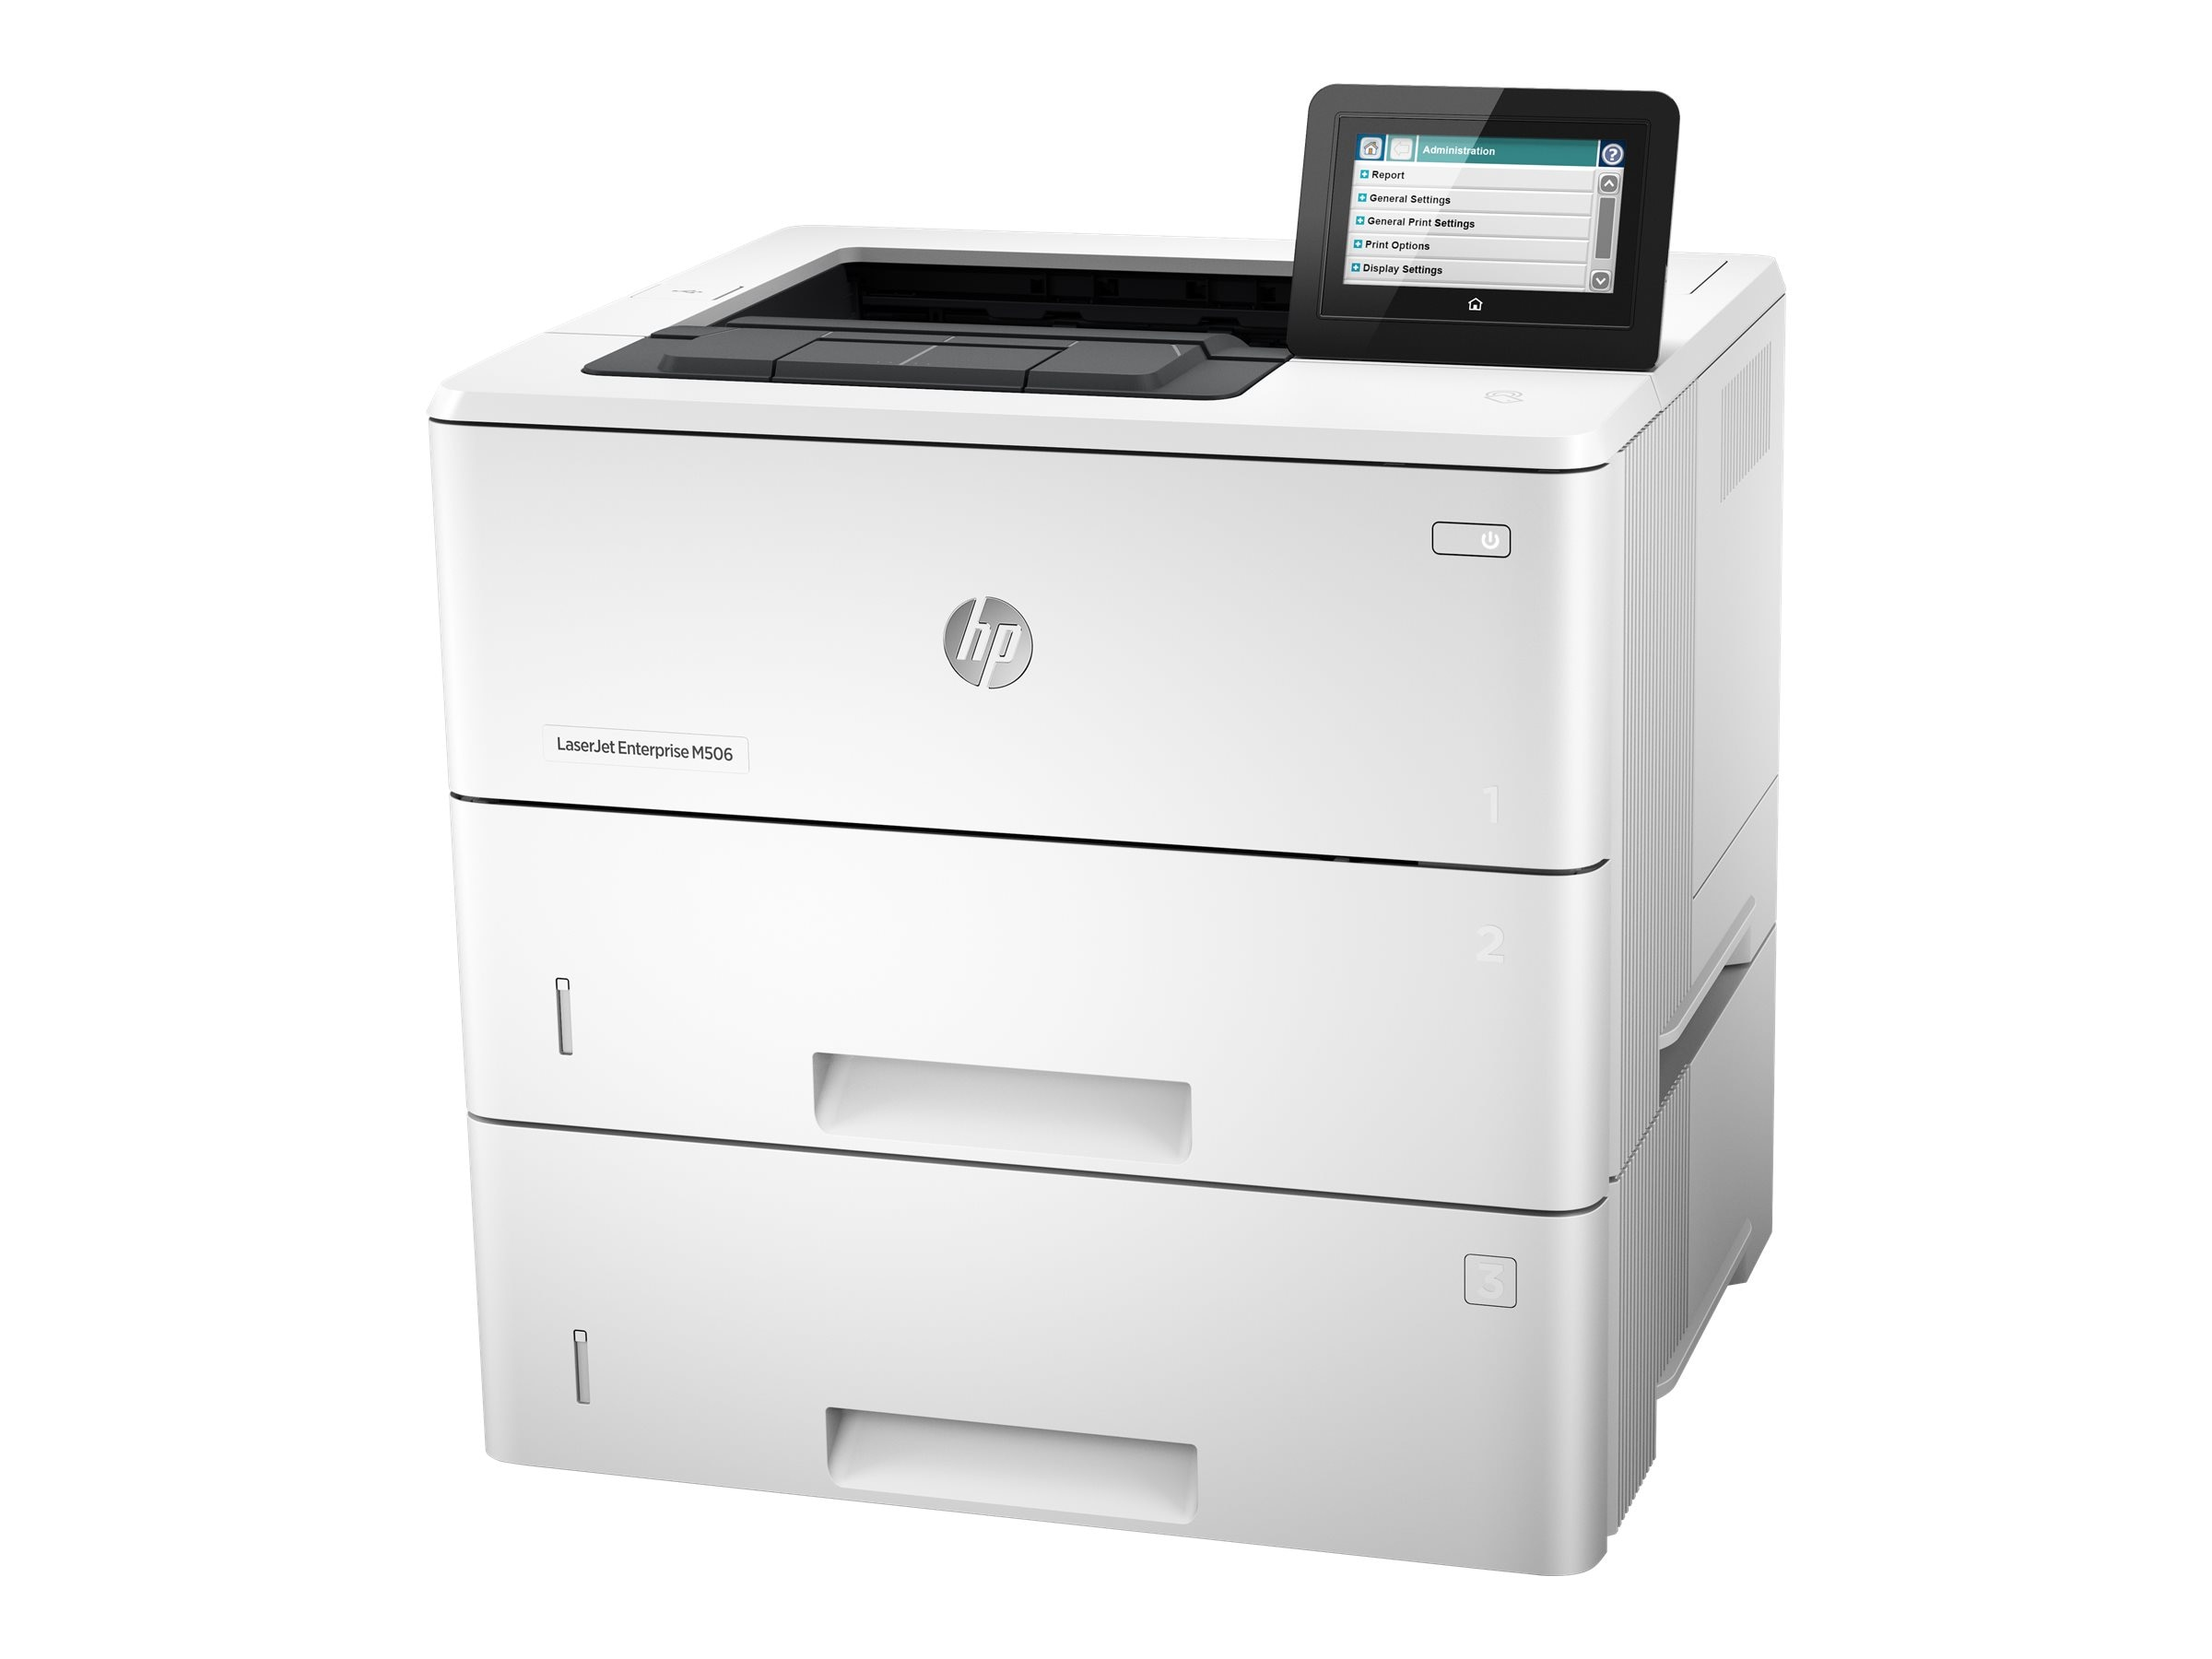 HP LaserJet Enterprise M506x Printer (VPA)